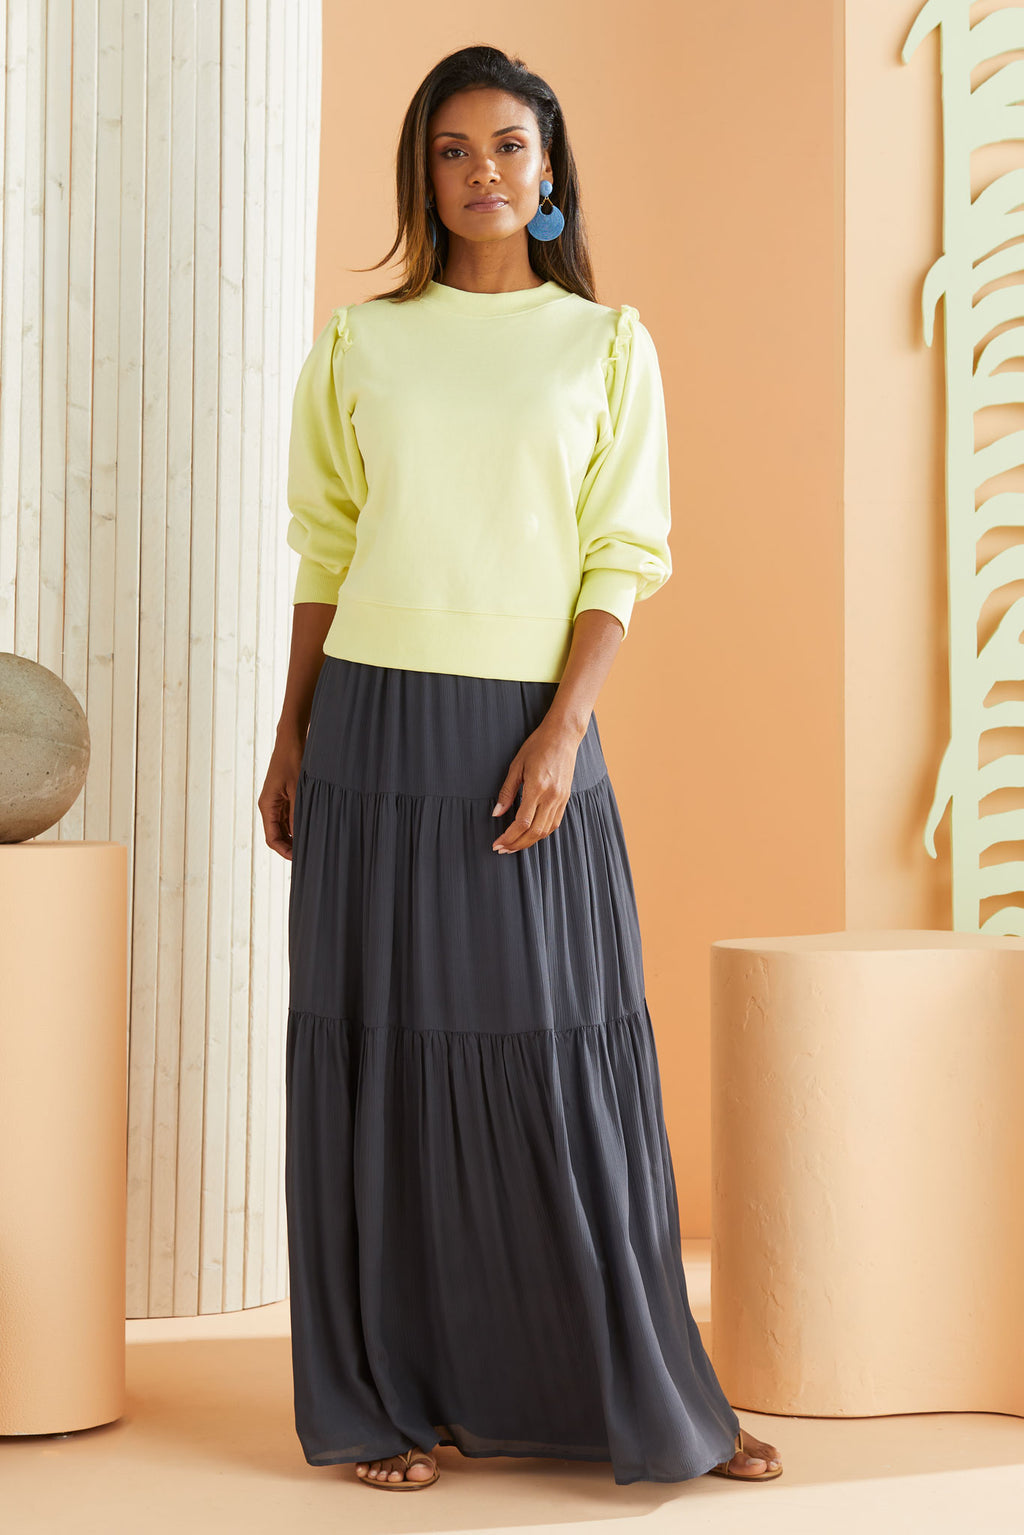 Lime sweatshirt worn over navy maxi dress.